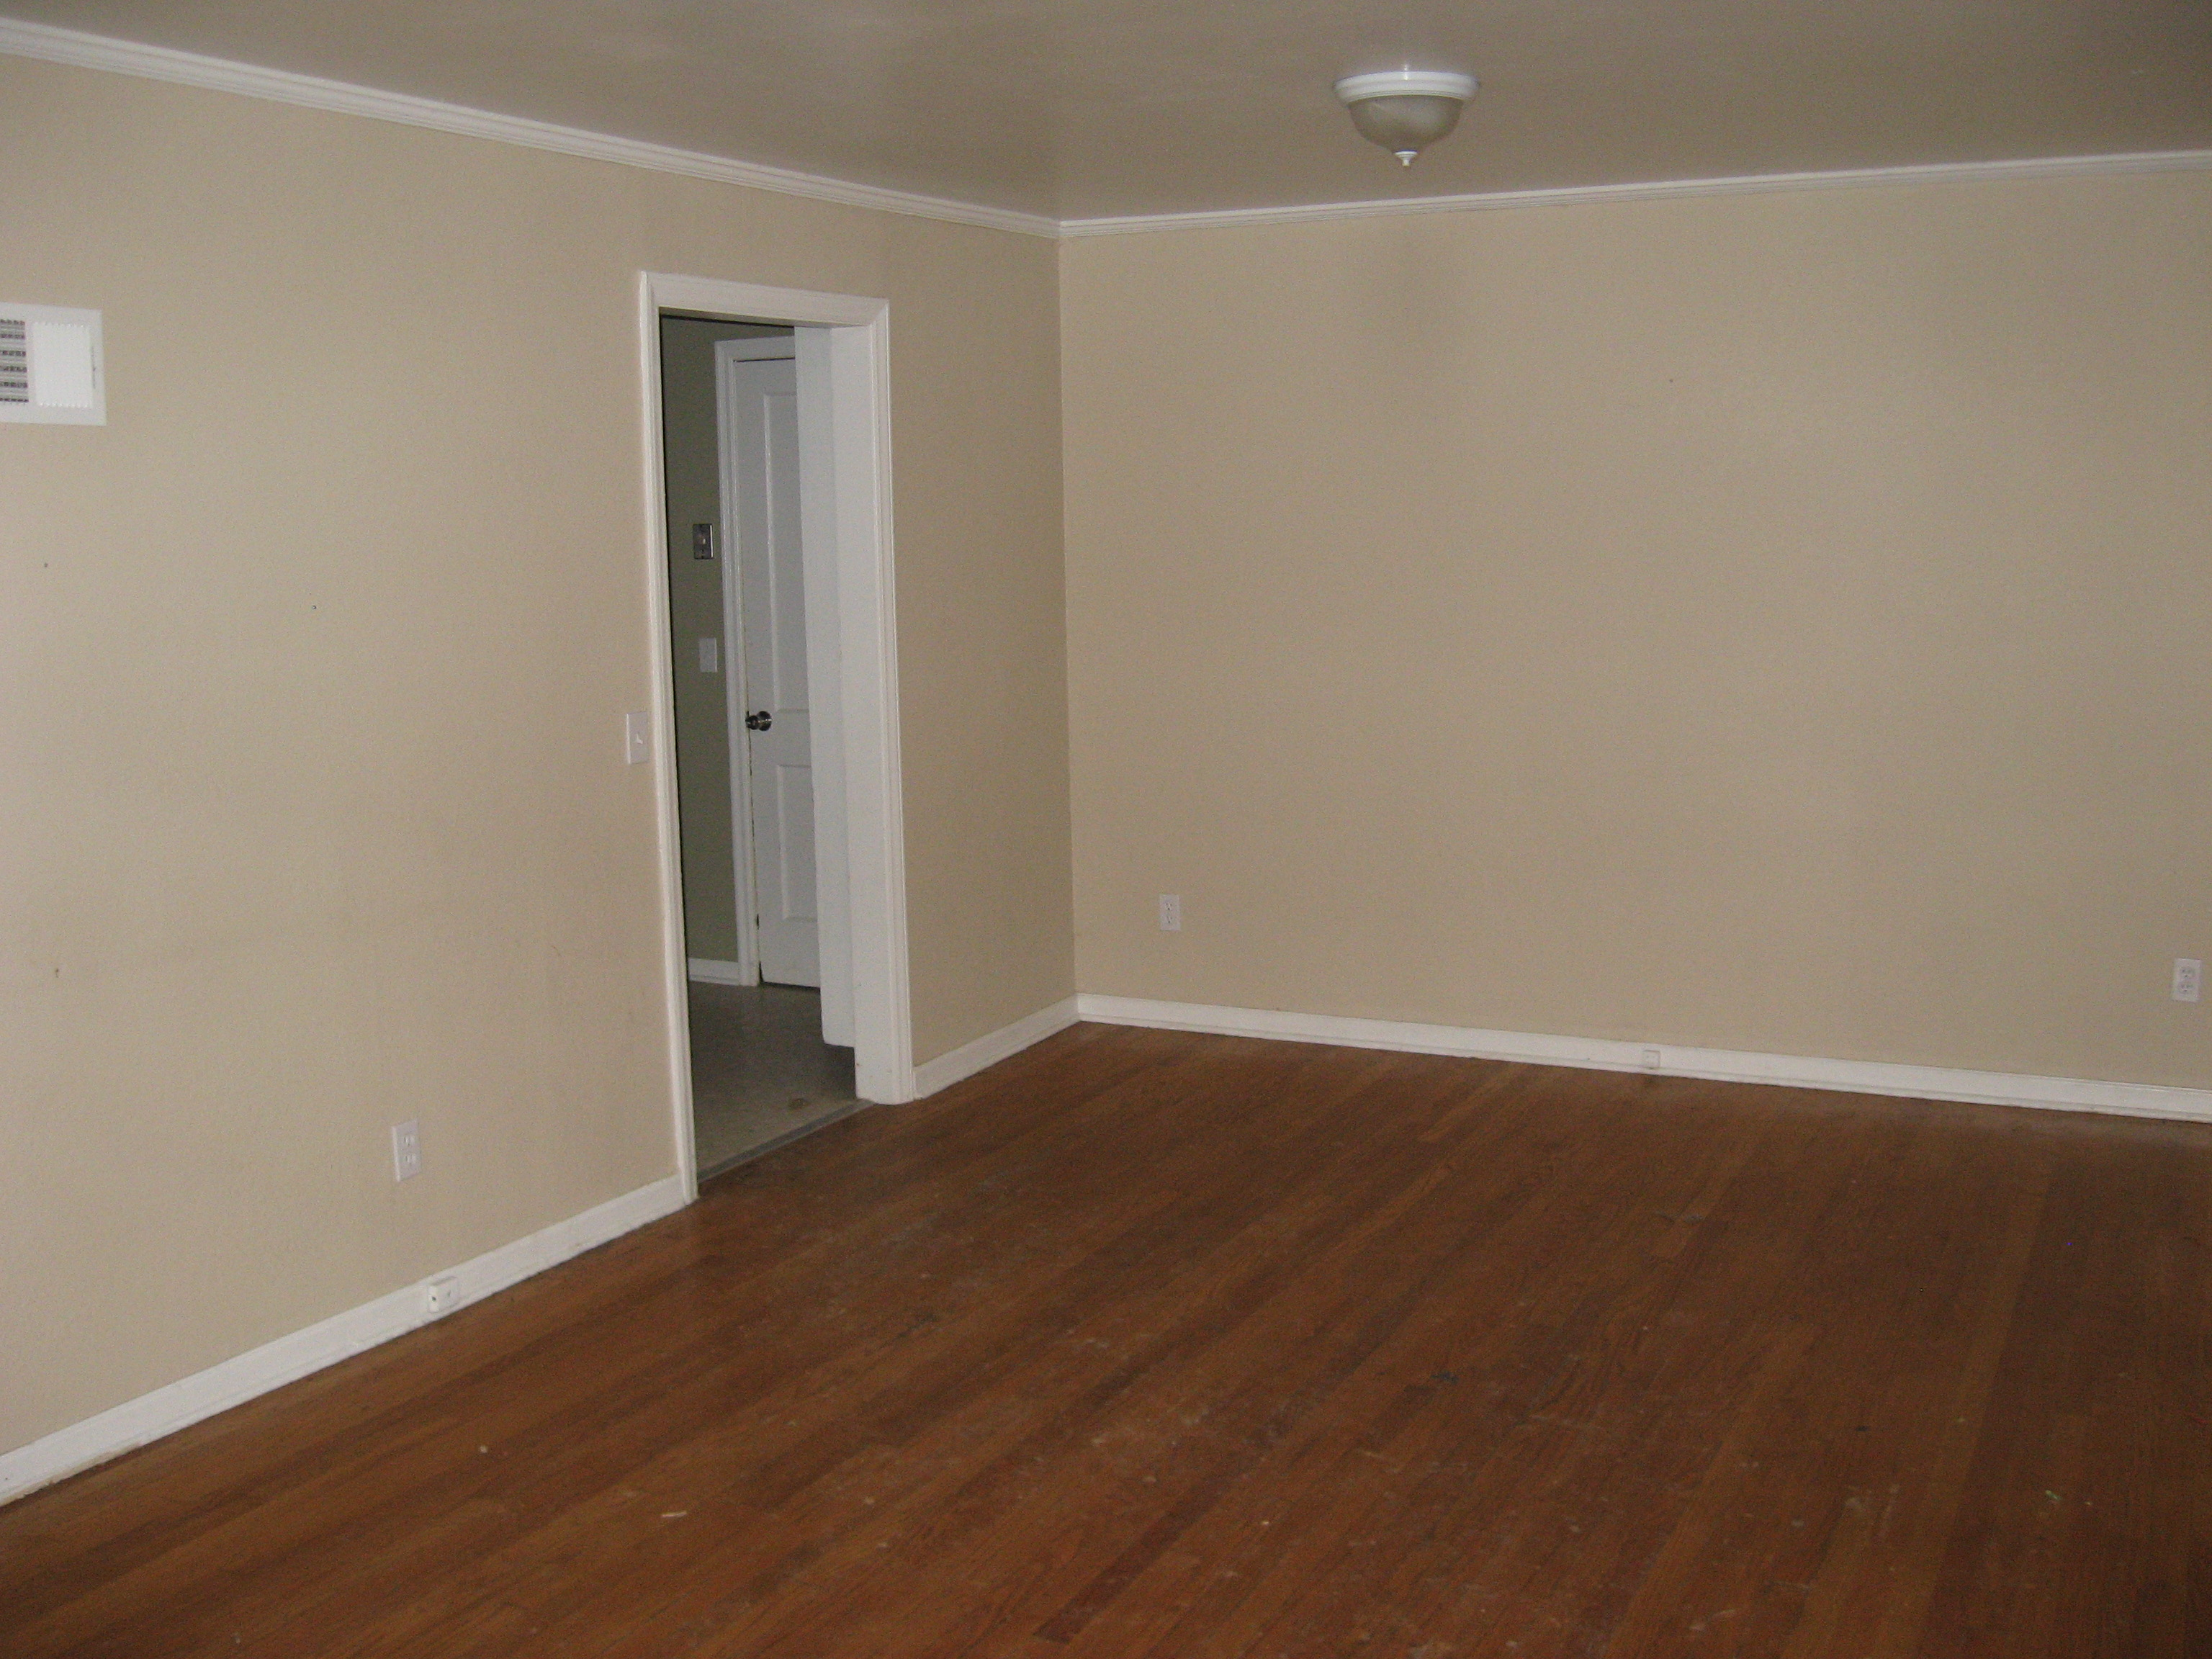 investment property for sale by owner